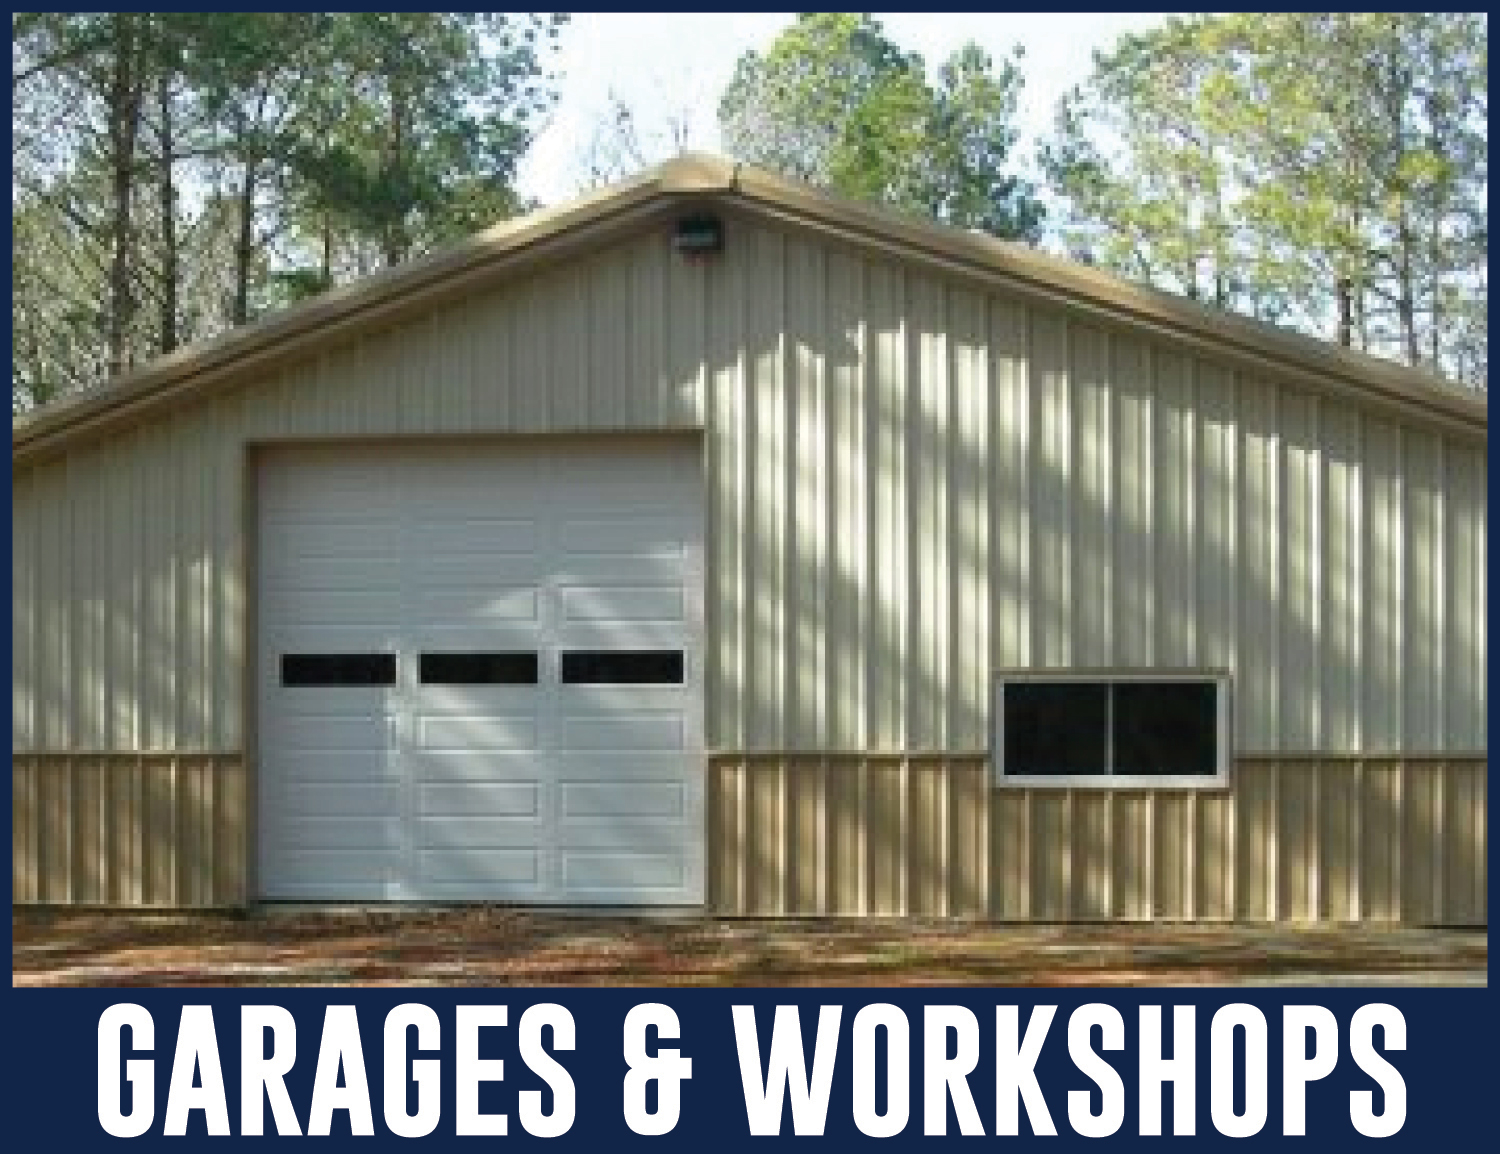 Garages & Workshops